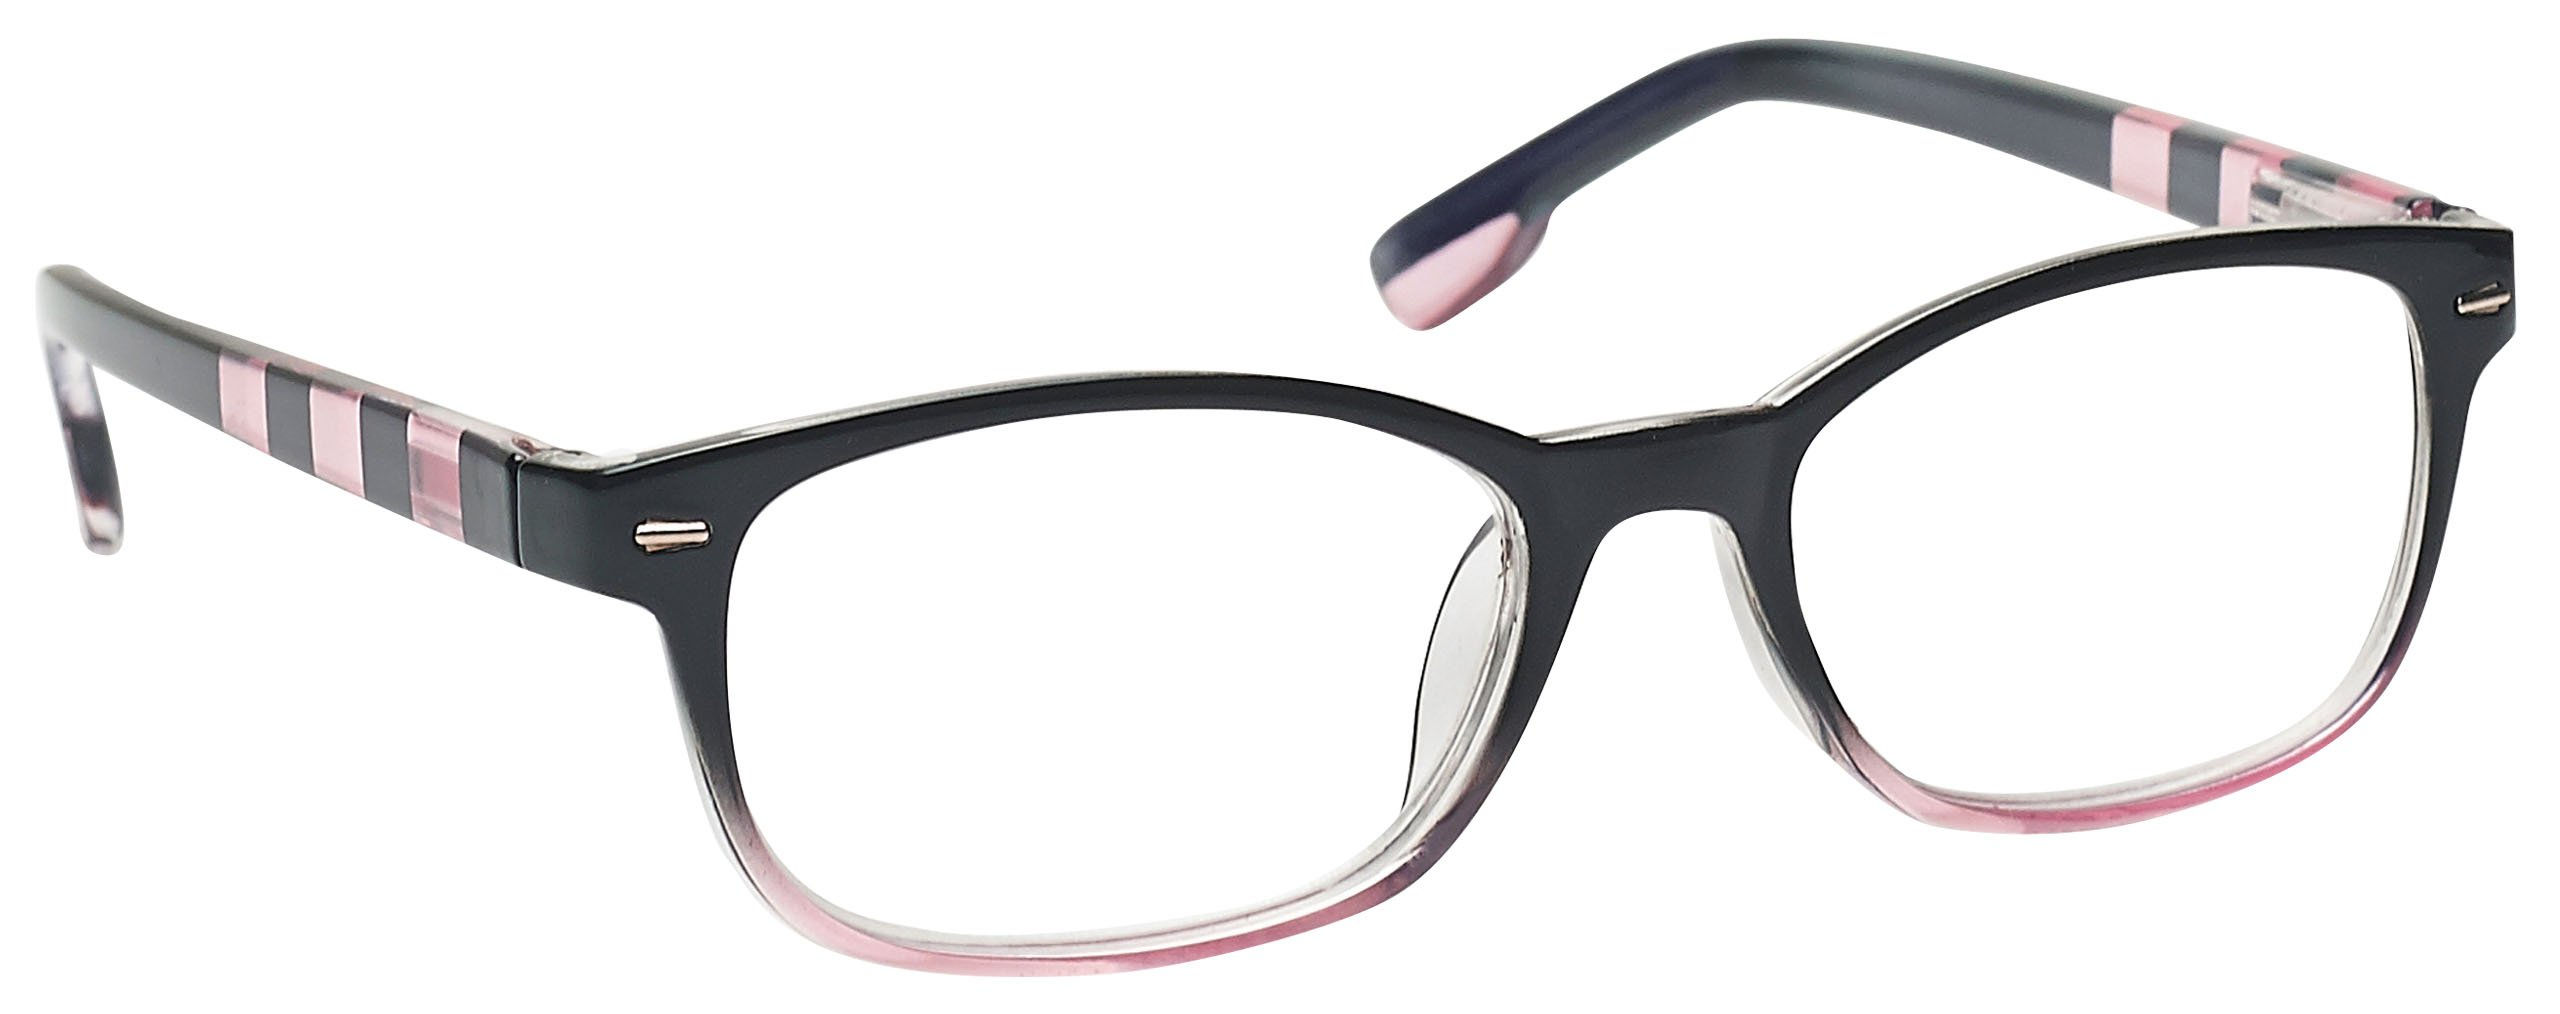 The Reading Glasses Company Black Soft Pink Stripe Readers Womens Ladies R40-4 +3.50